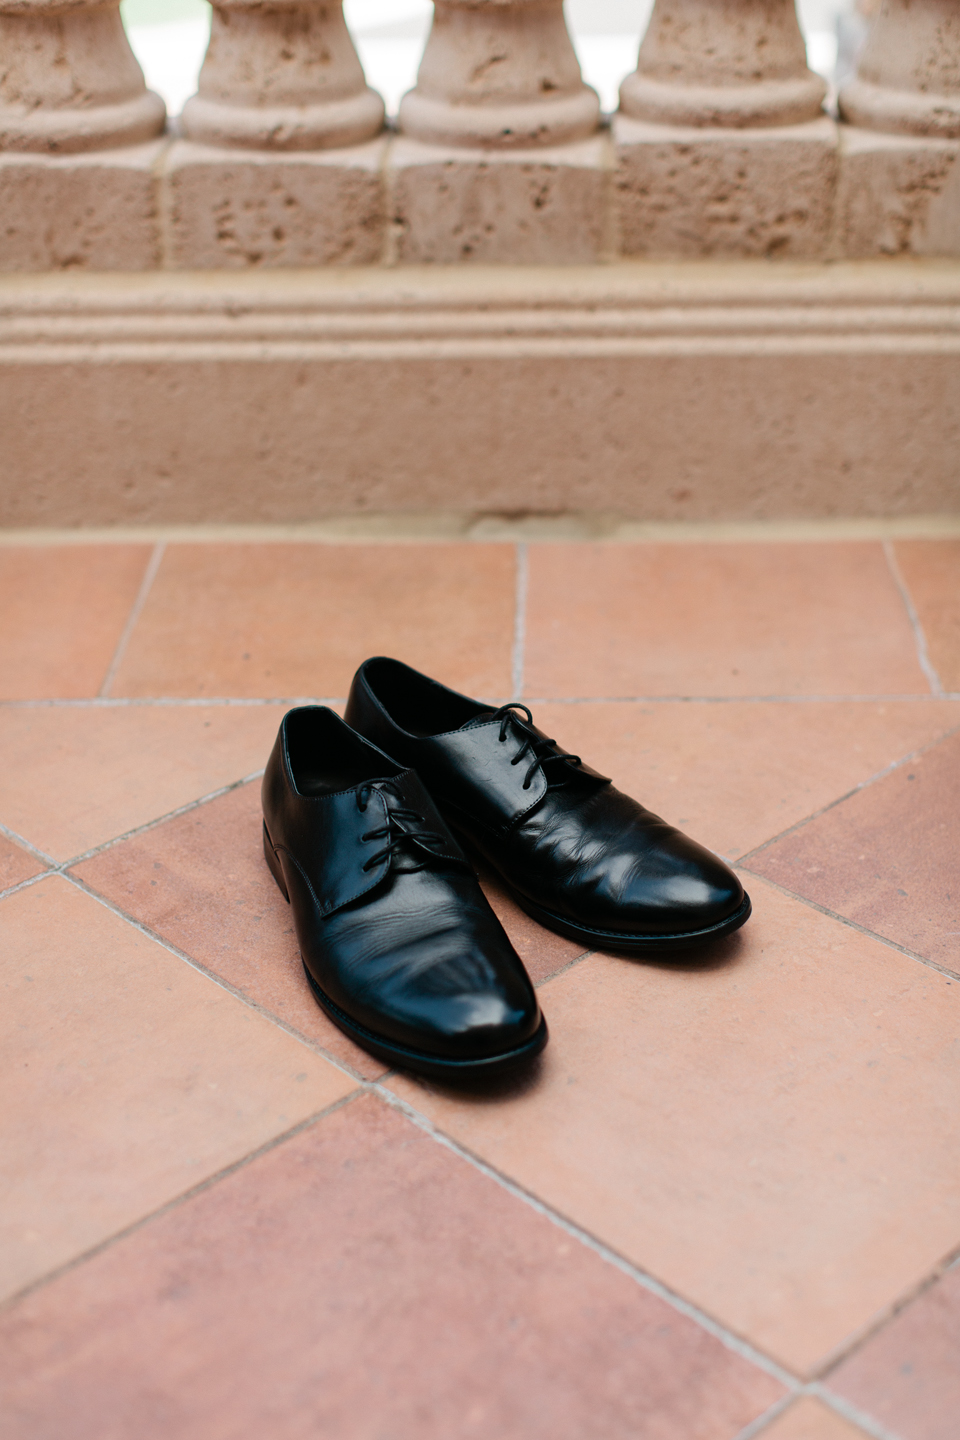 Image of men's dress shoes in black on terracotta tile at the TPC Sawgrass in Ponte Vedra, Florida